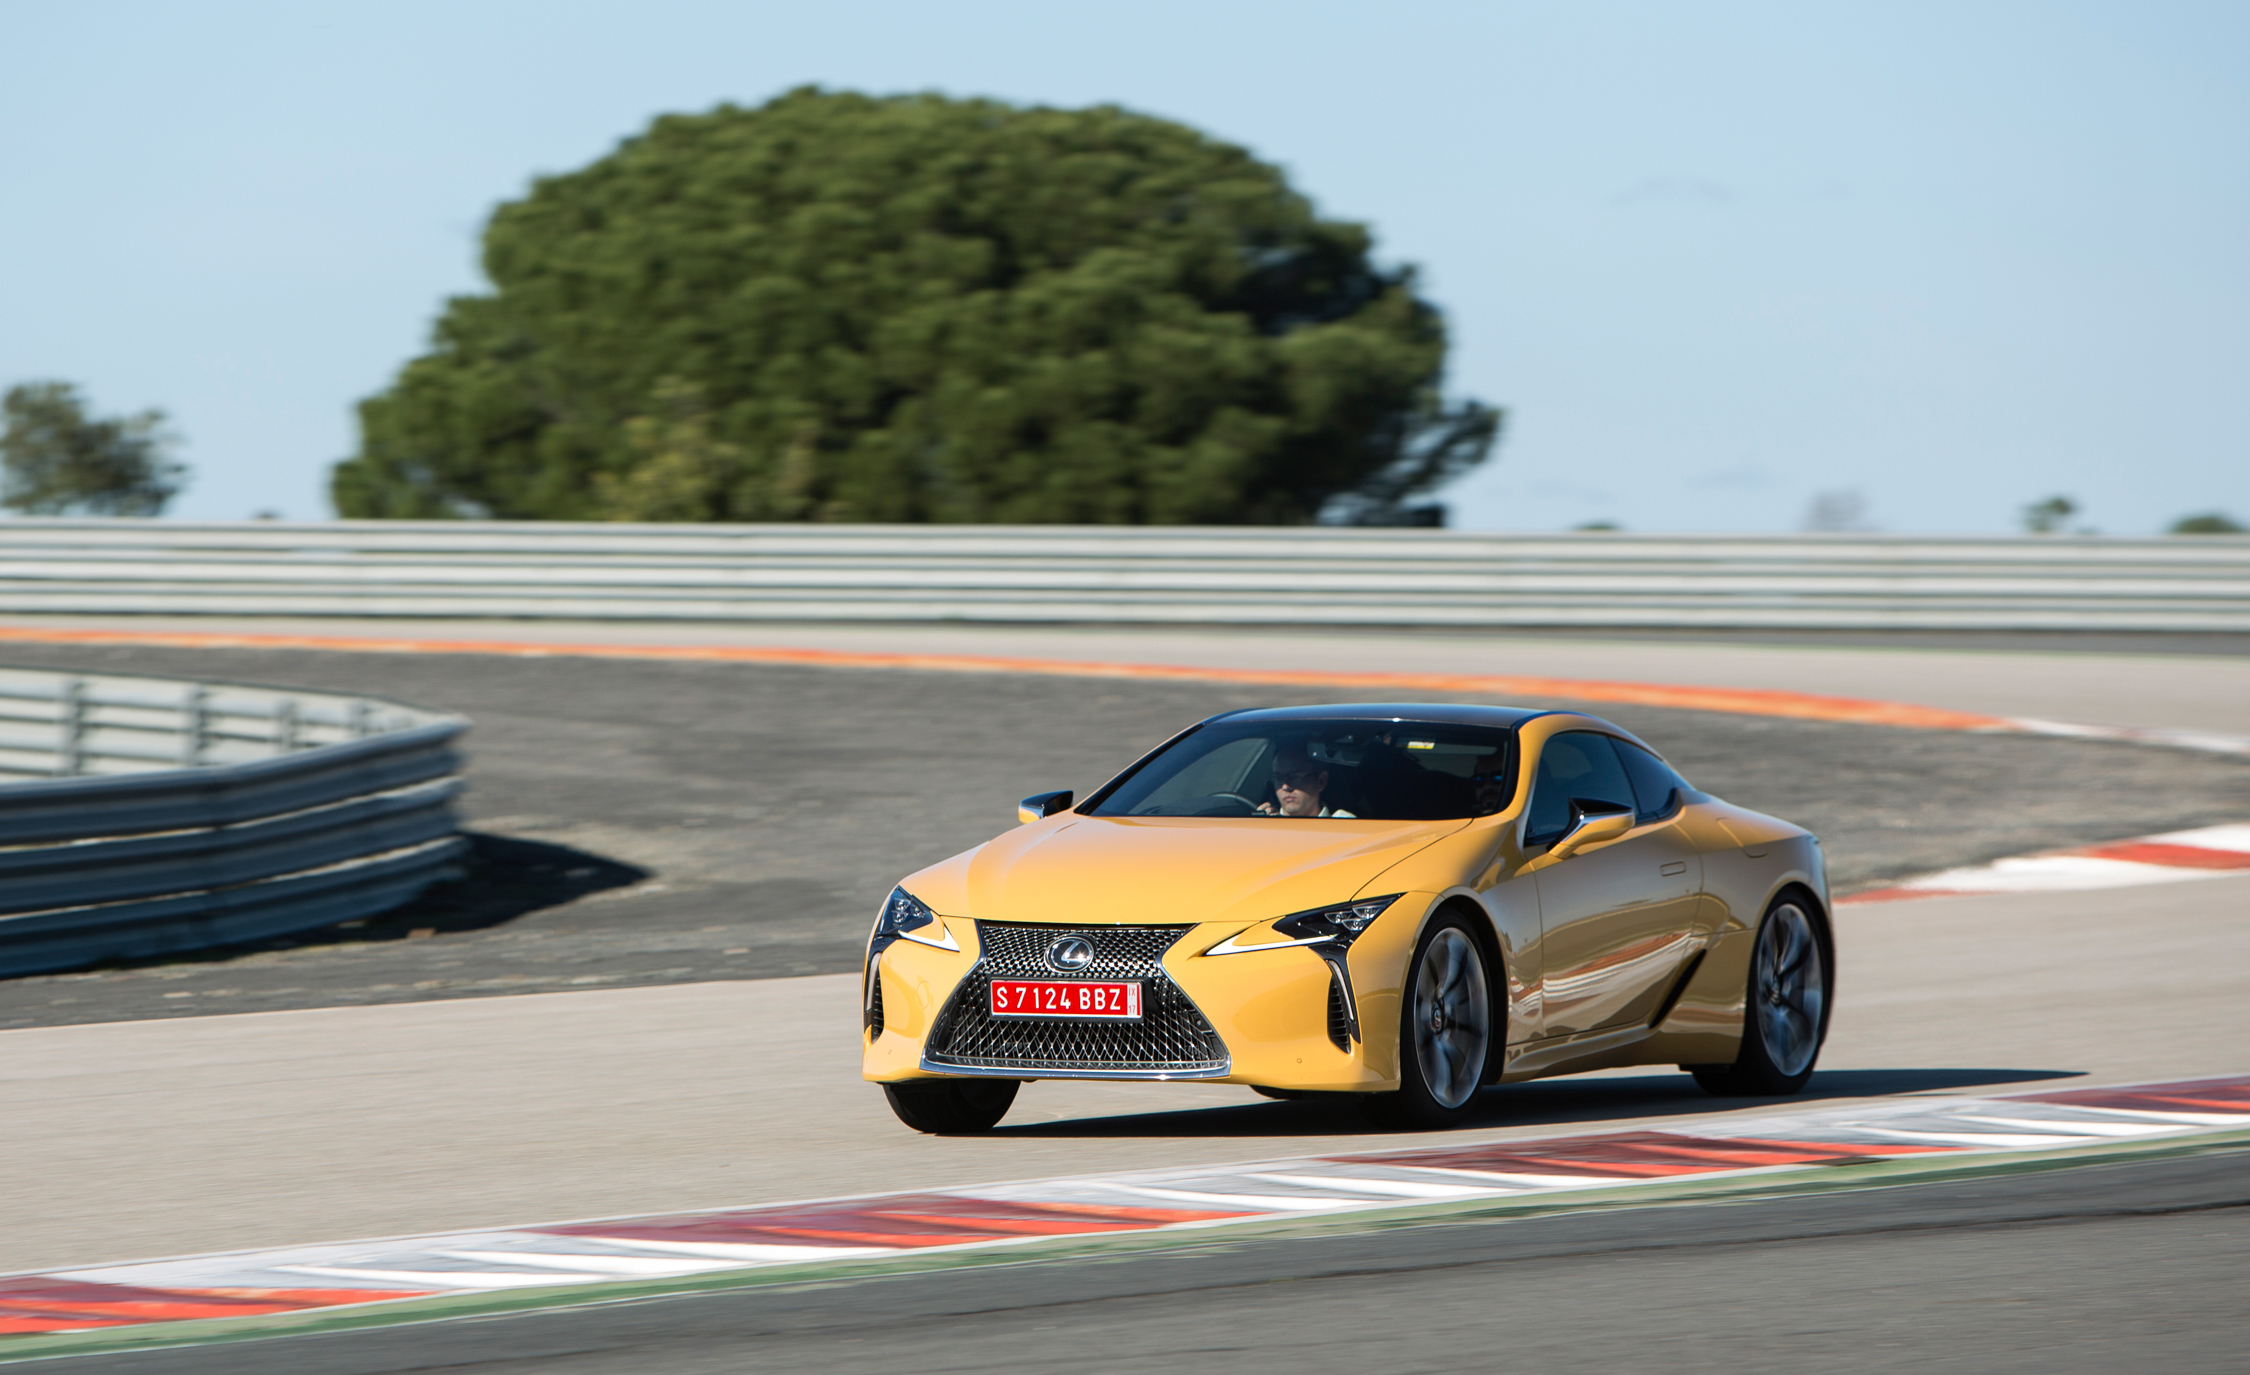 2018 Lexus Lc 500 Performance Front And Side View (View 24 of 84)